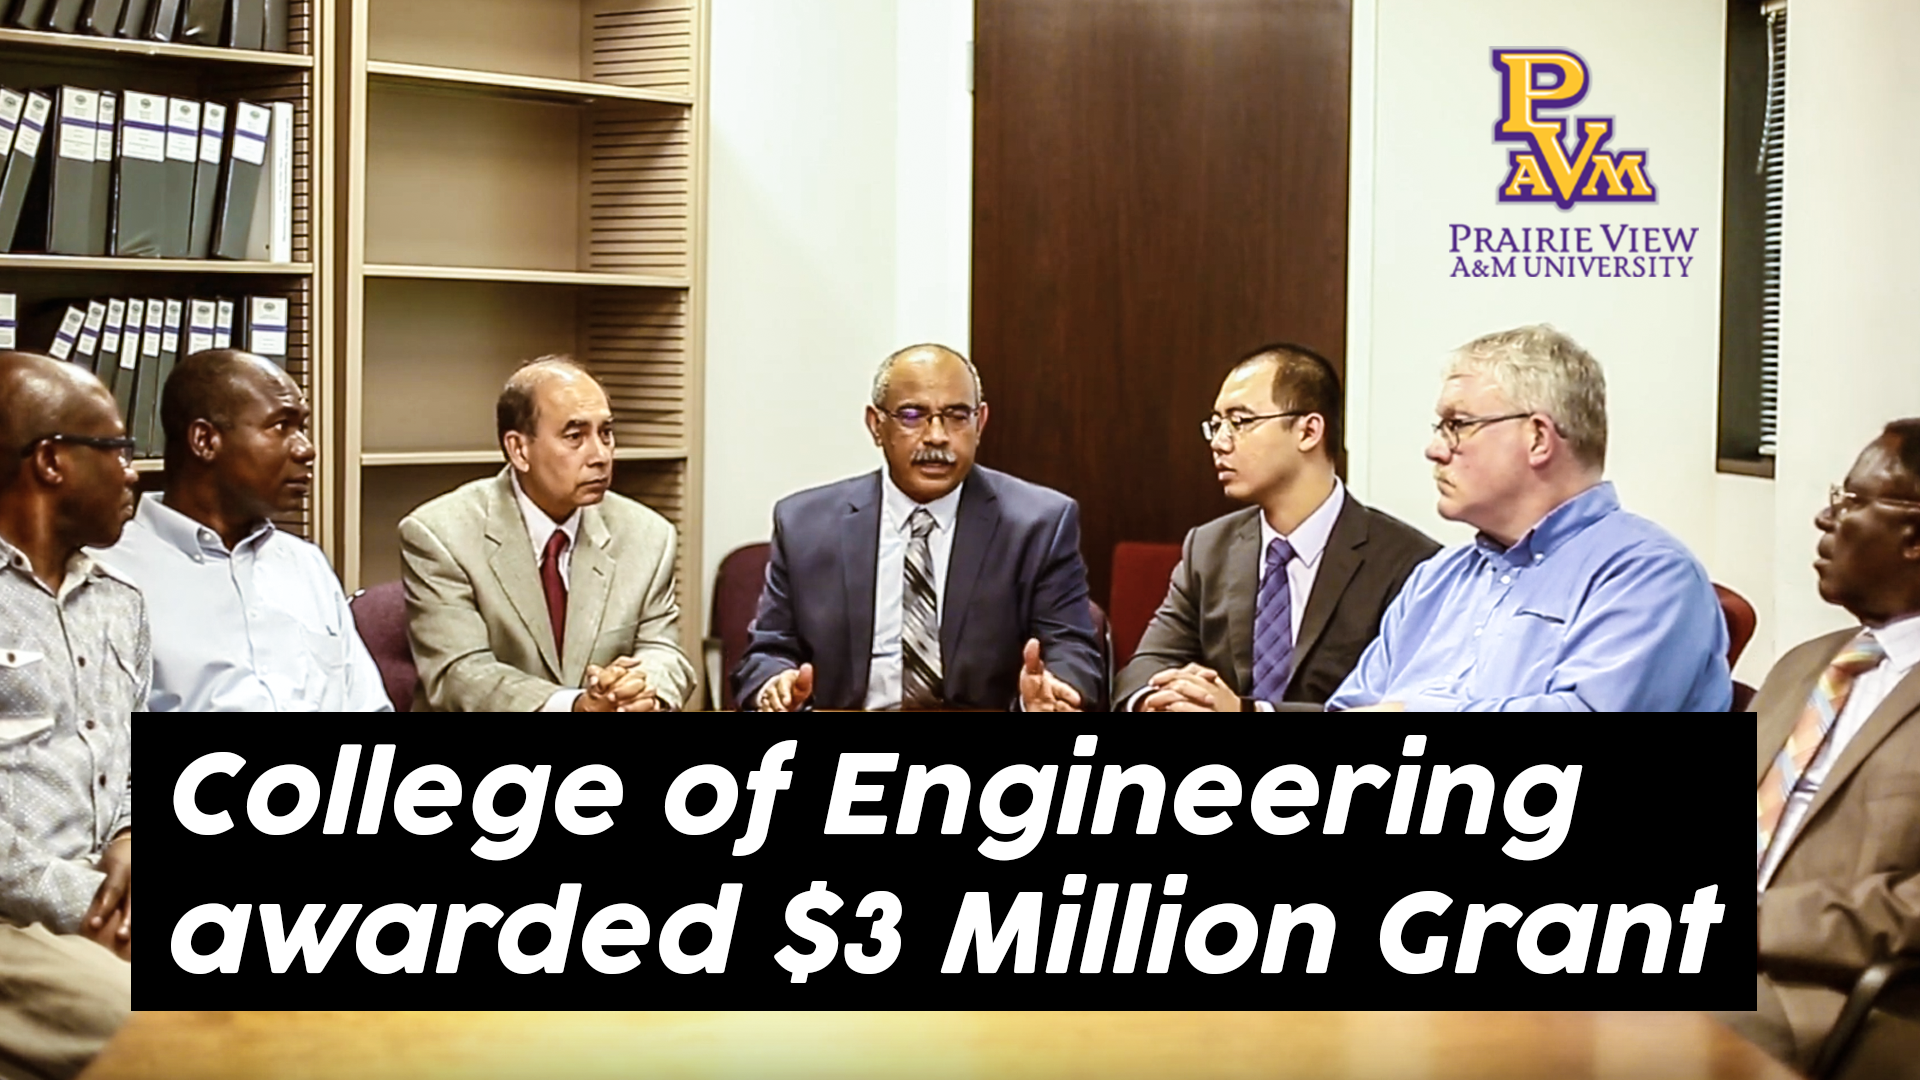 College of Engineering awarded  $3 Million Grant